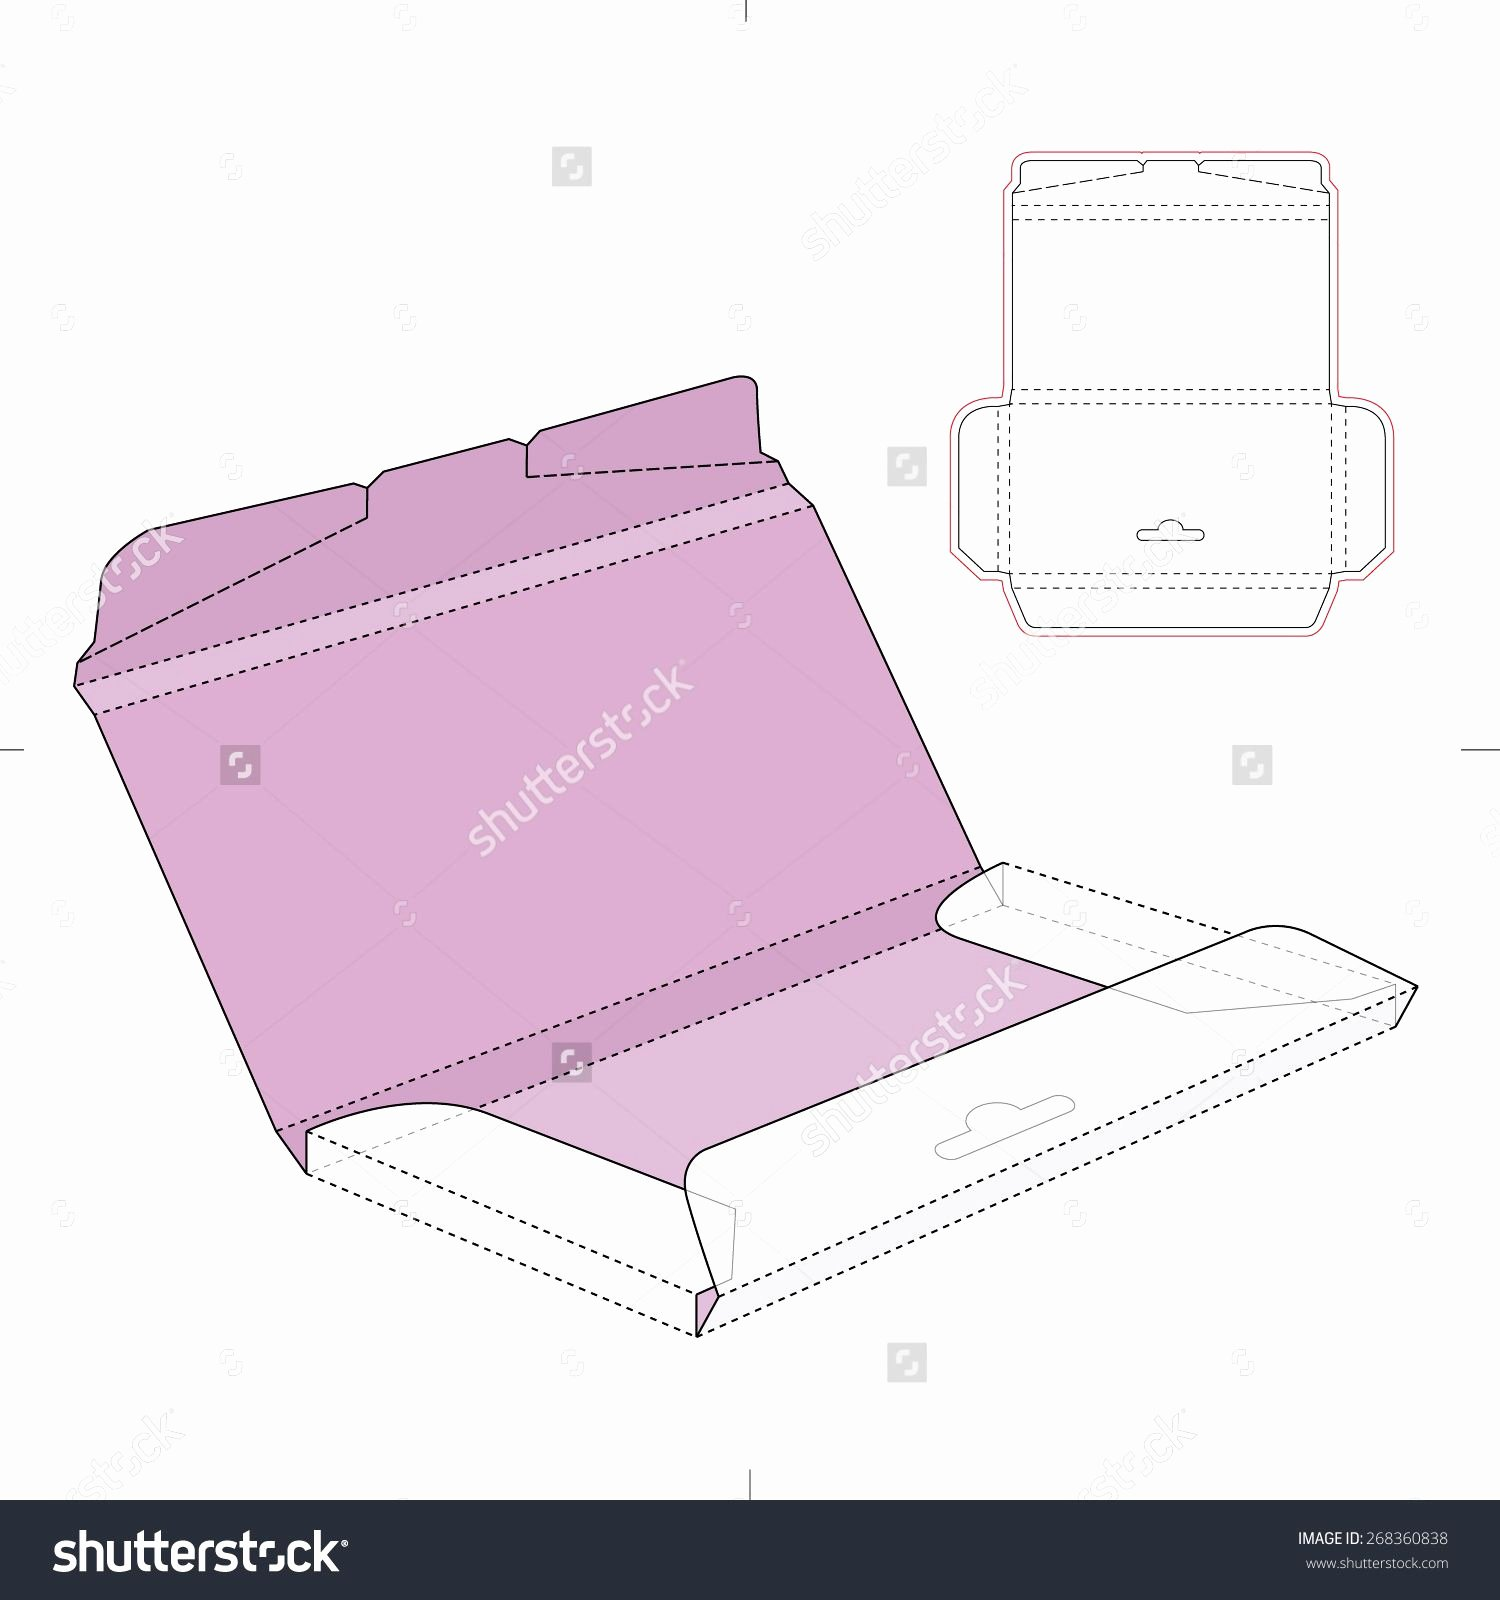 Die Cut Box Template Beautiful Chocolate Box with Die Cut Template Stock Vector